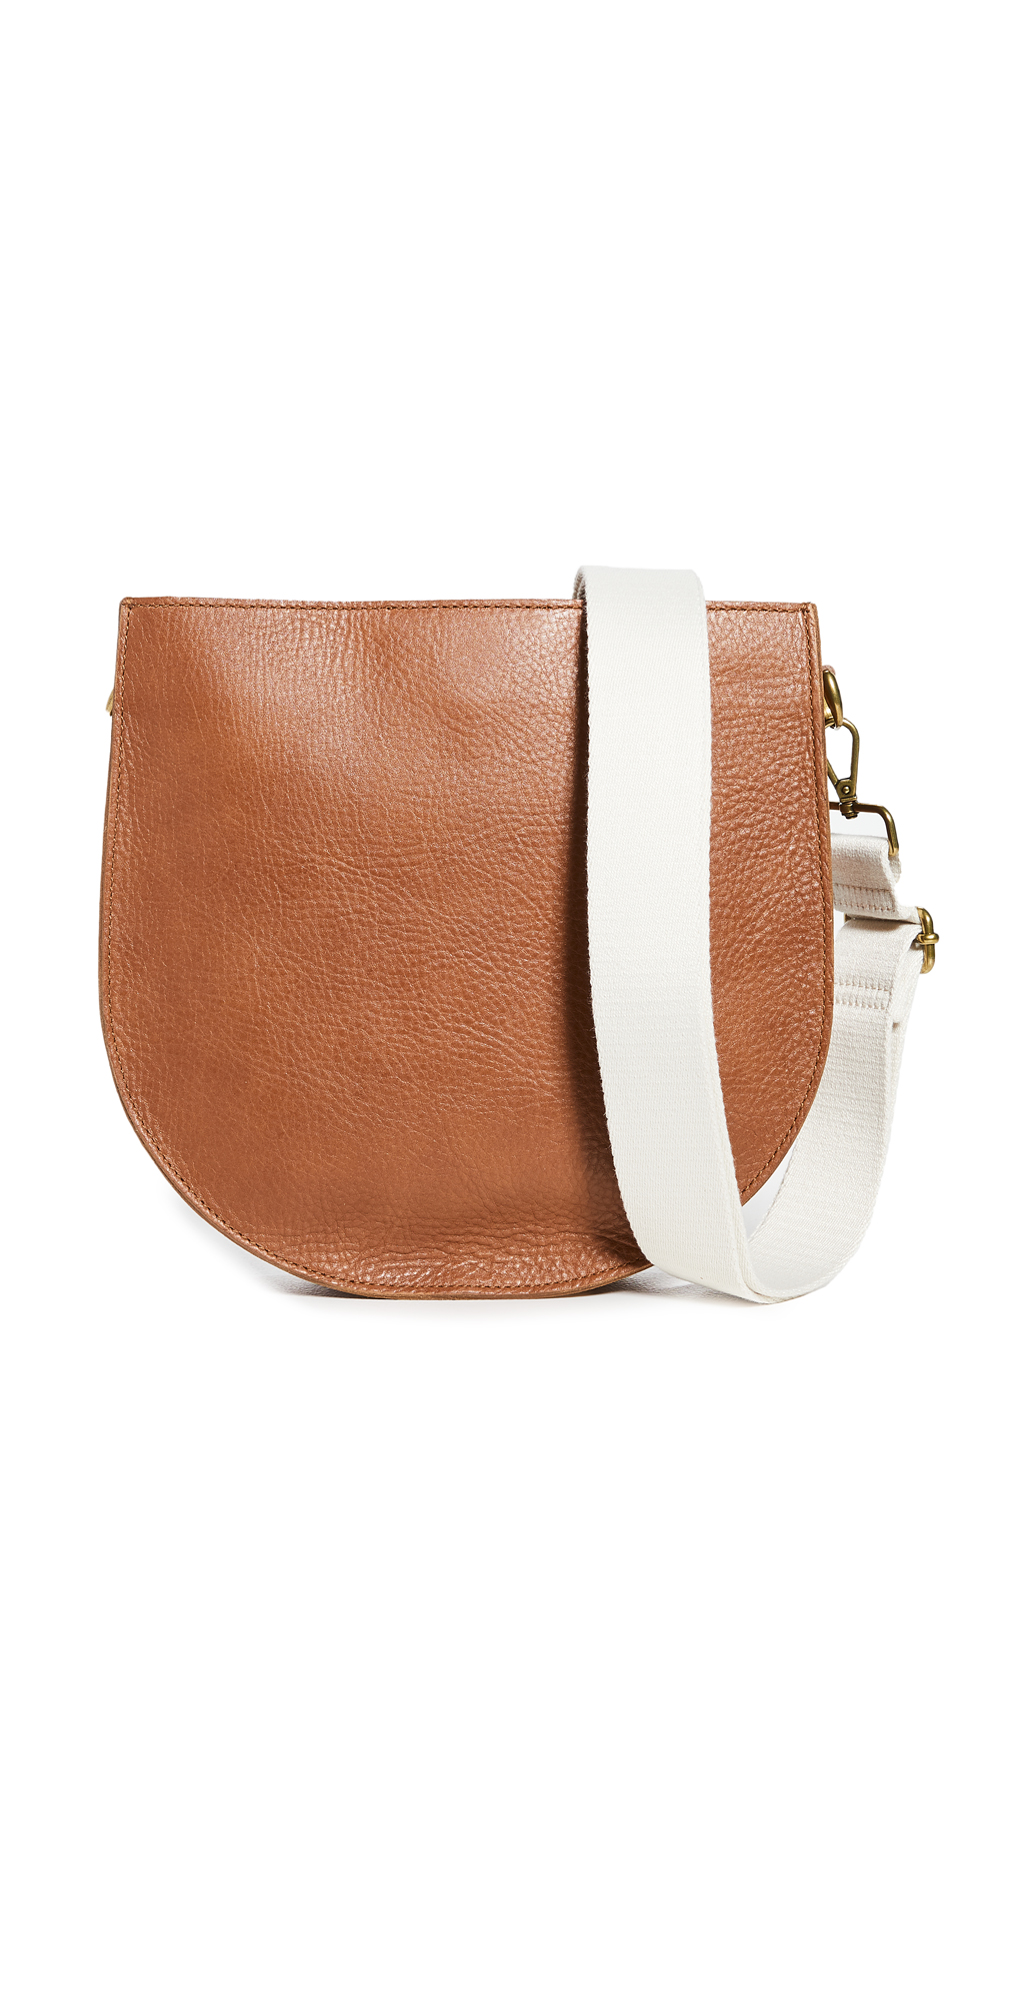 Madewell Transport U Saddle Bag